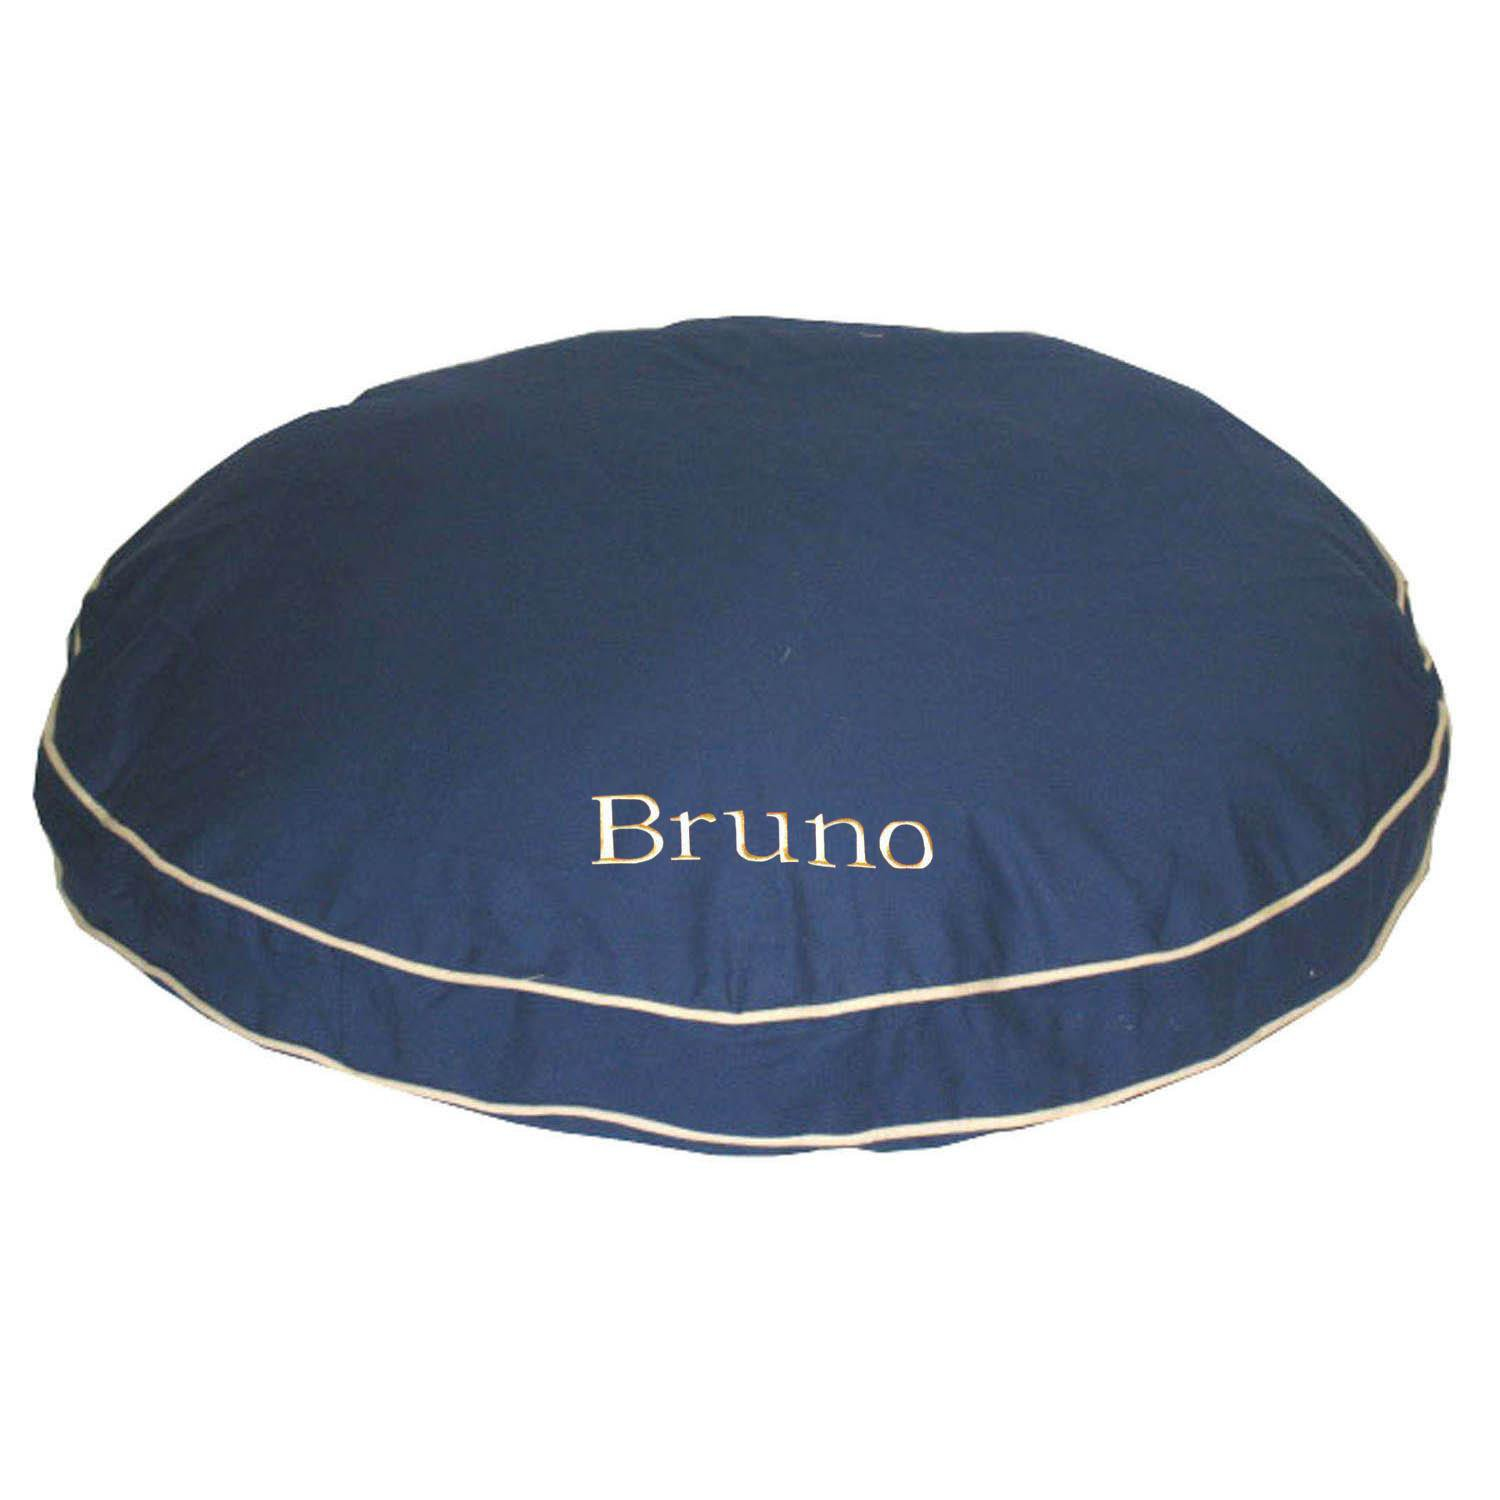 Carolina Pet Company Blue Classic Twill Round-A-Bout Personalized Dog Bed